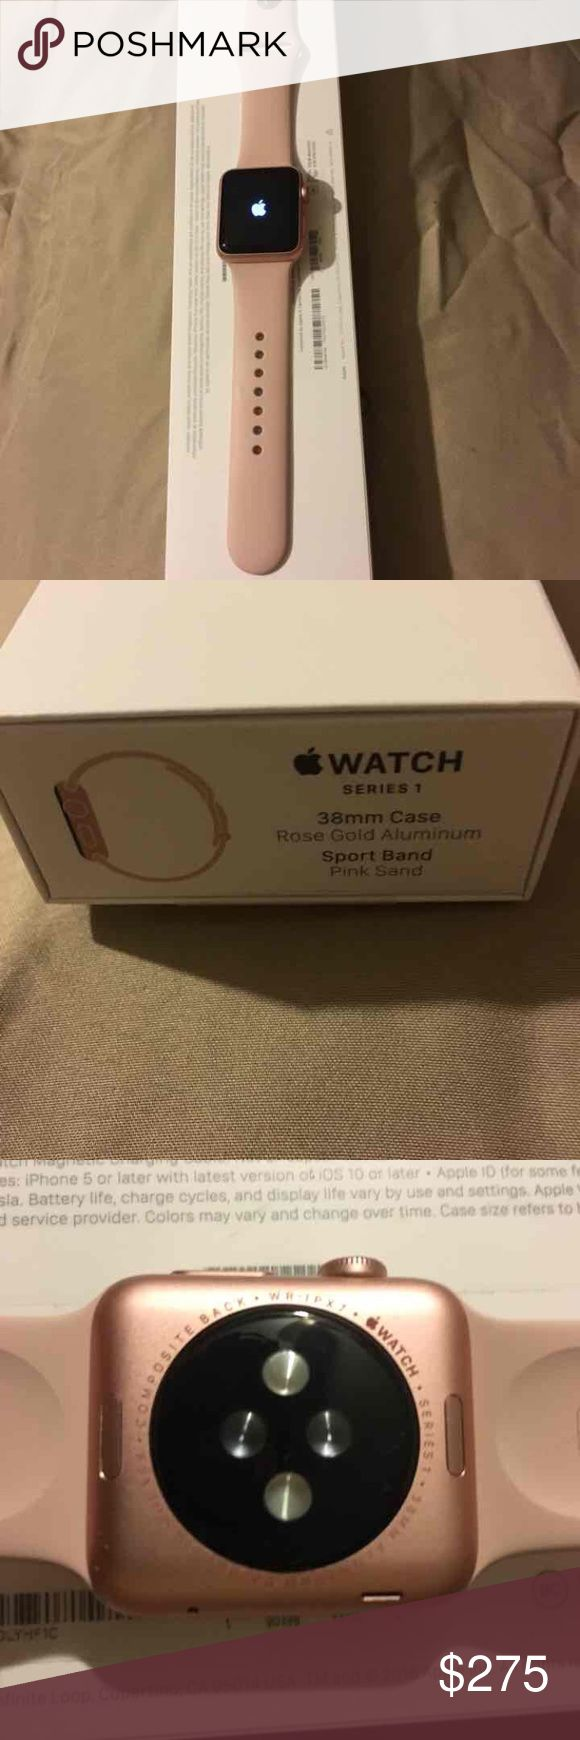 Apple watch 38mm Series 1 New Apple watch 38mm Series 1. Great buy  ❤️ Apple  Accessories Watches